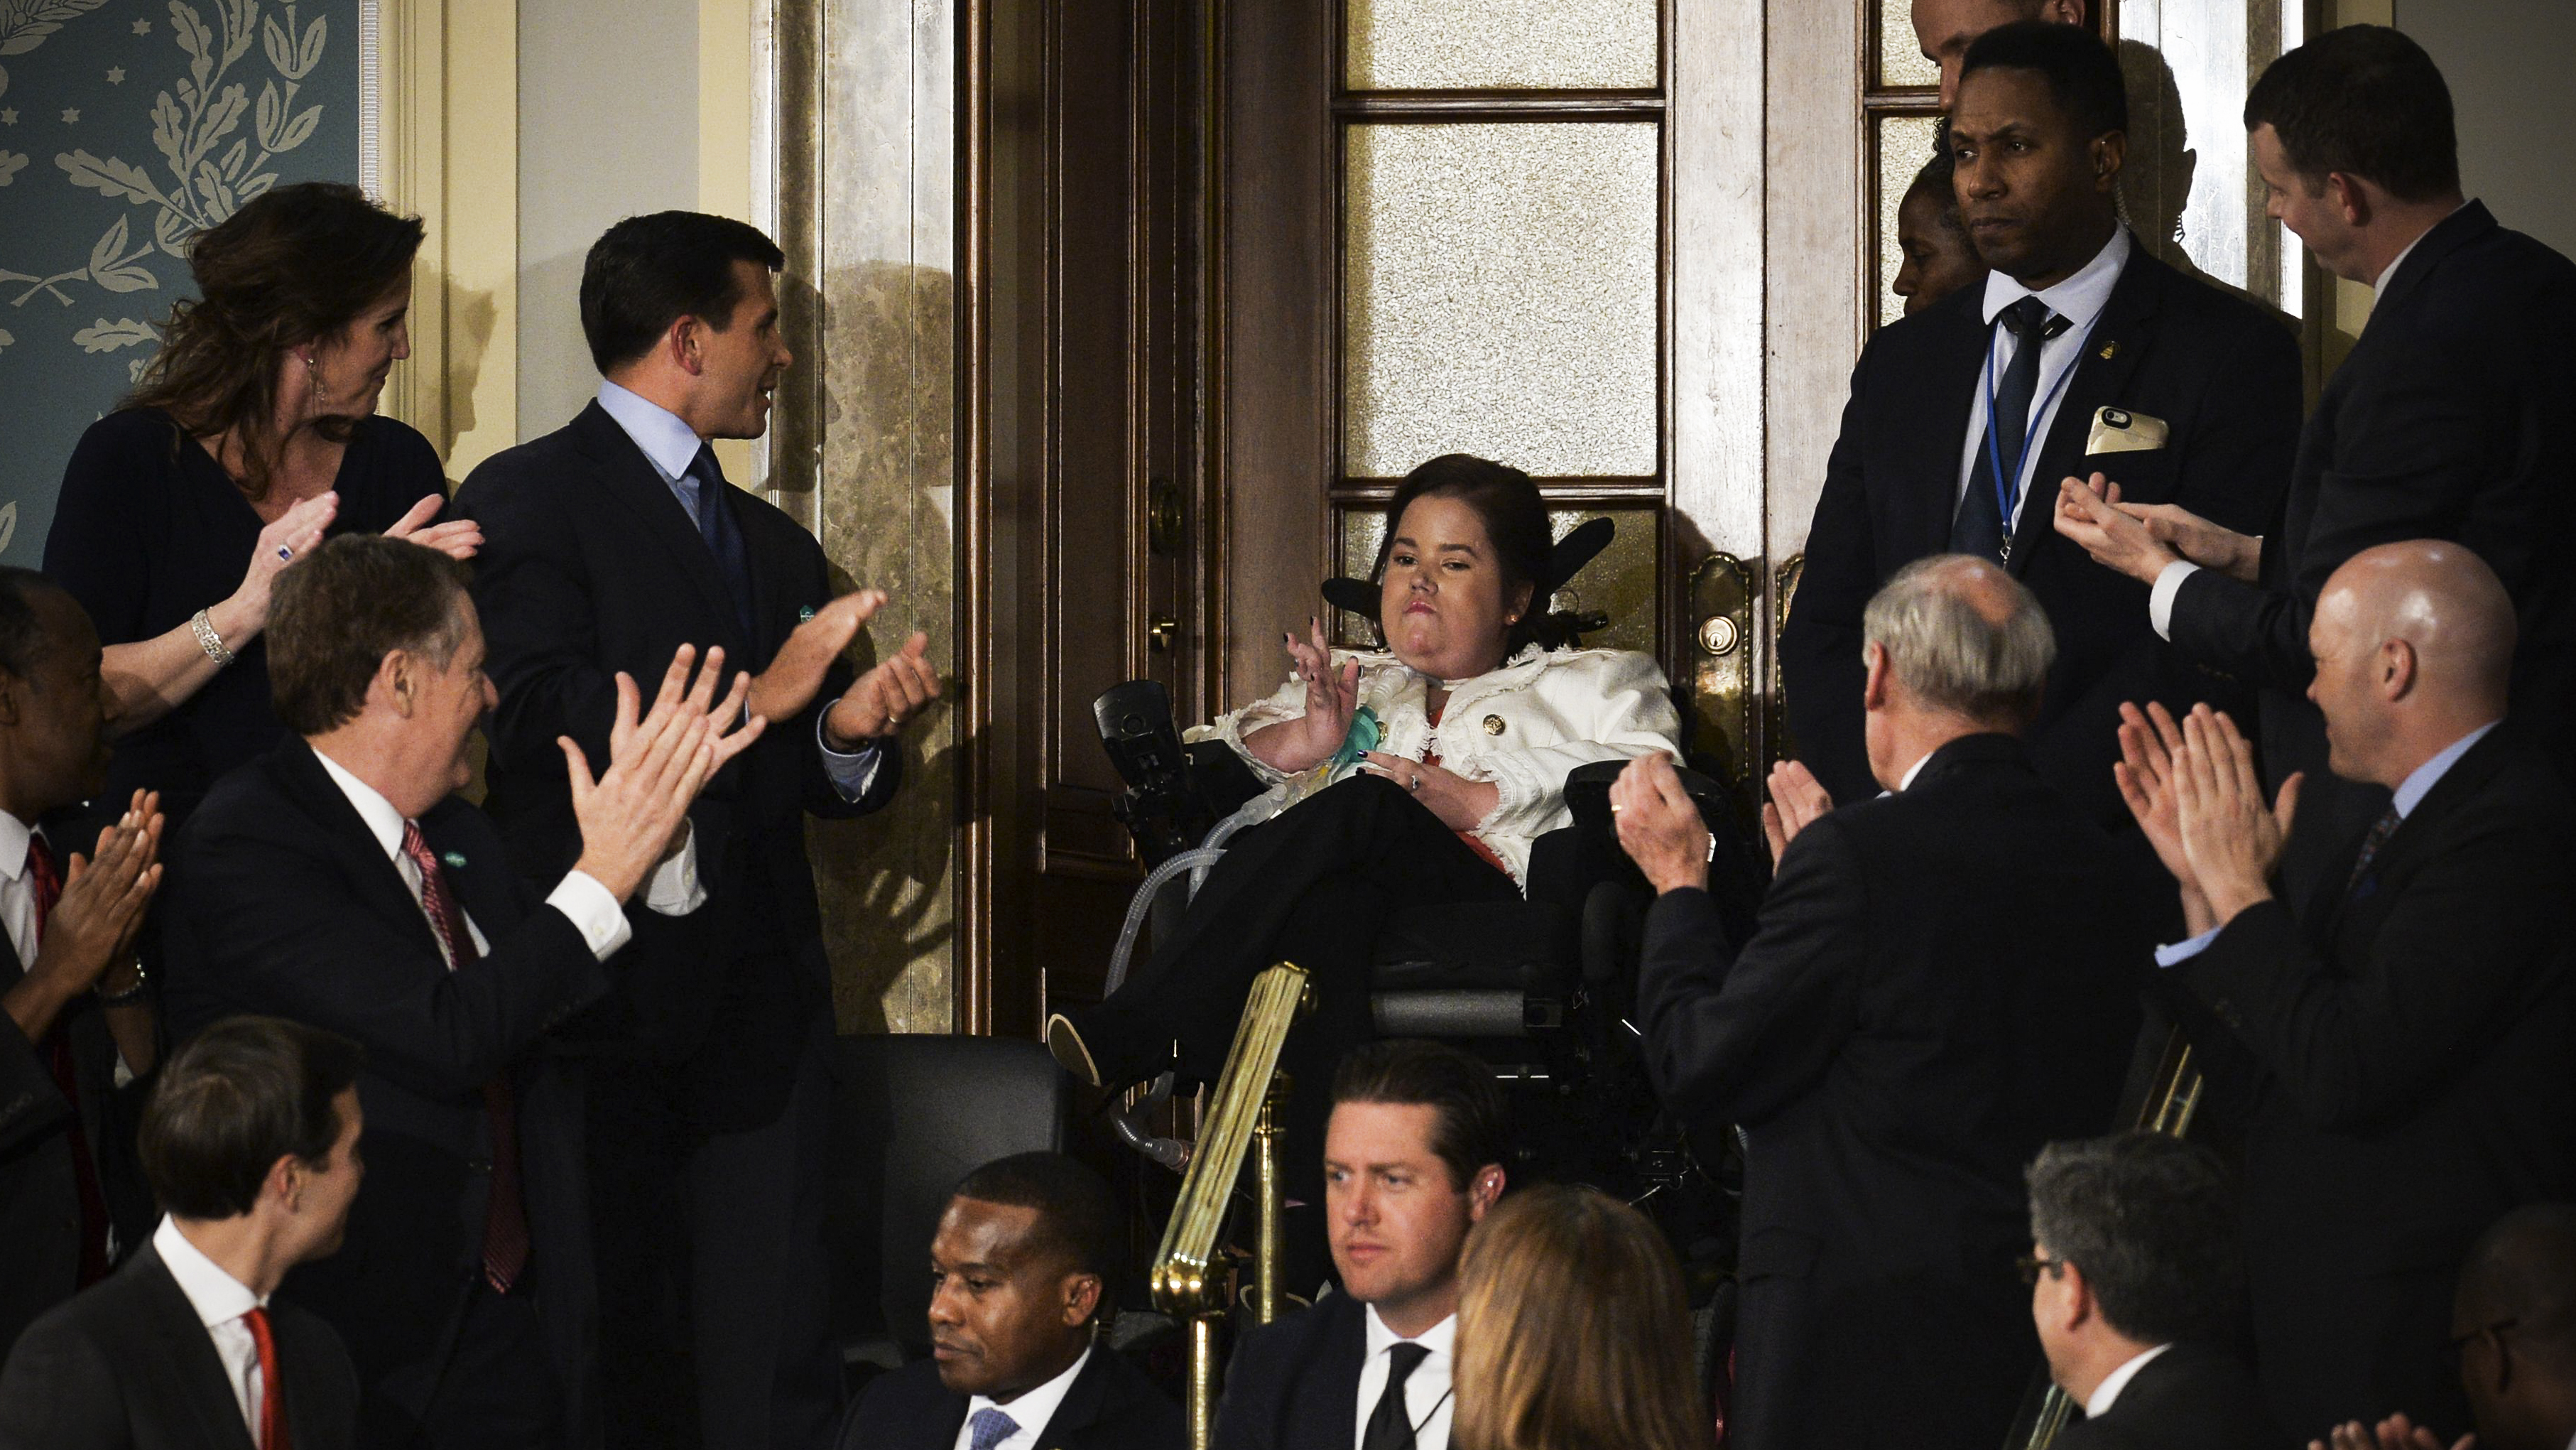 Megan Crowley (C) is applauded as US President Donald Trump addresses a joint session of the US Congress on February 28, 2017 at the Capitol in Washington, DC.<br>At 15 months old, Megan was diagnosed with Pompe Disease and not expected to live more than